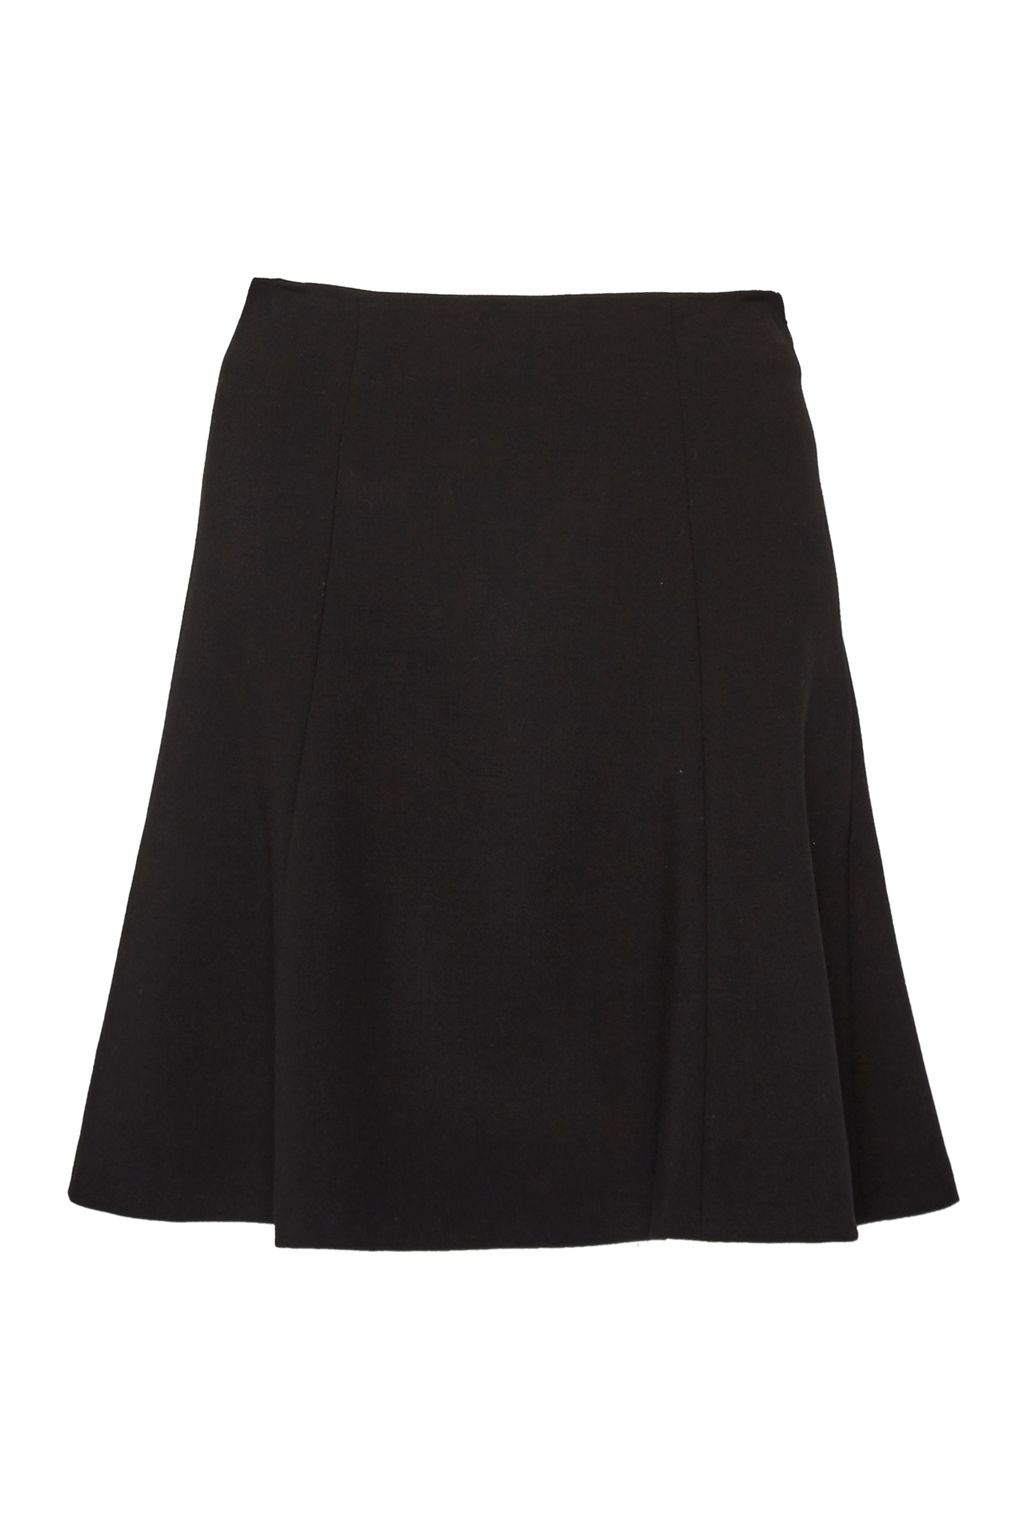 French Connection Whisper Ruth Mini Skirt, Black